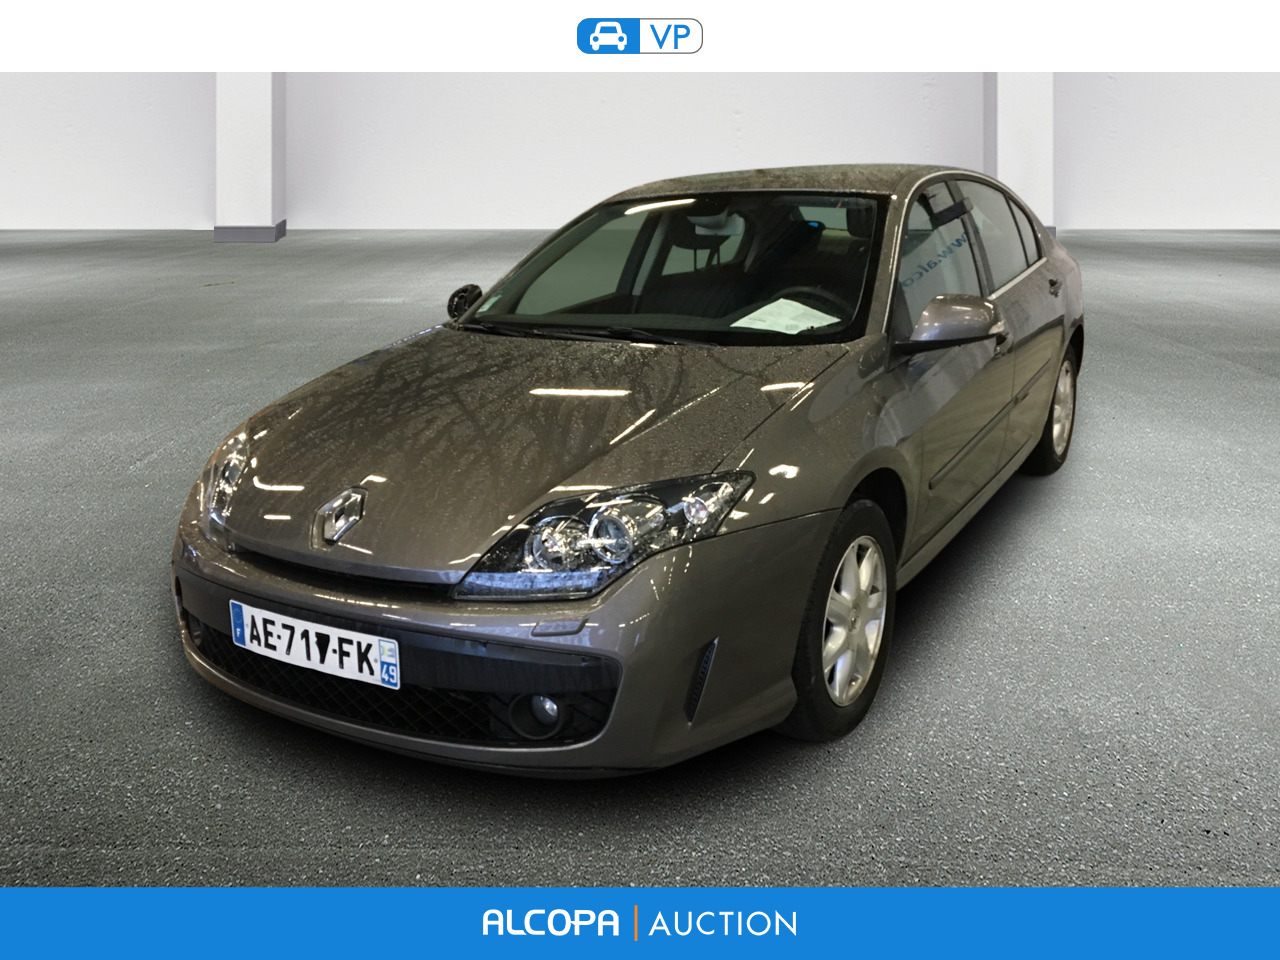 renault laguna laguna 1 5 dci110 black edition alcopa auction. Black Bedroom Furniture Sets. Home Design Ideas